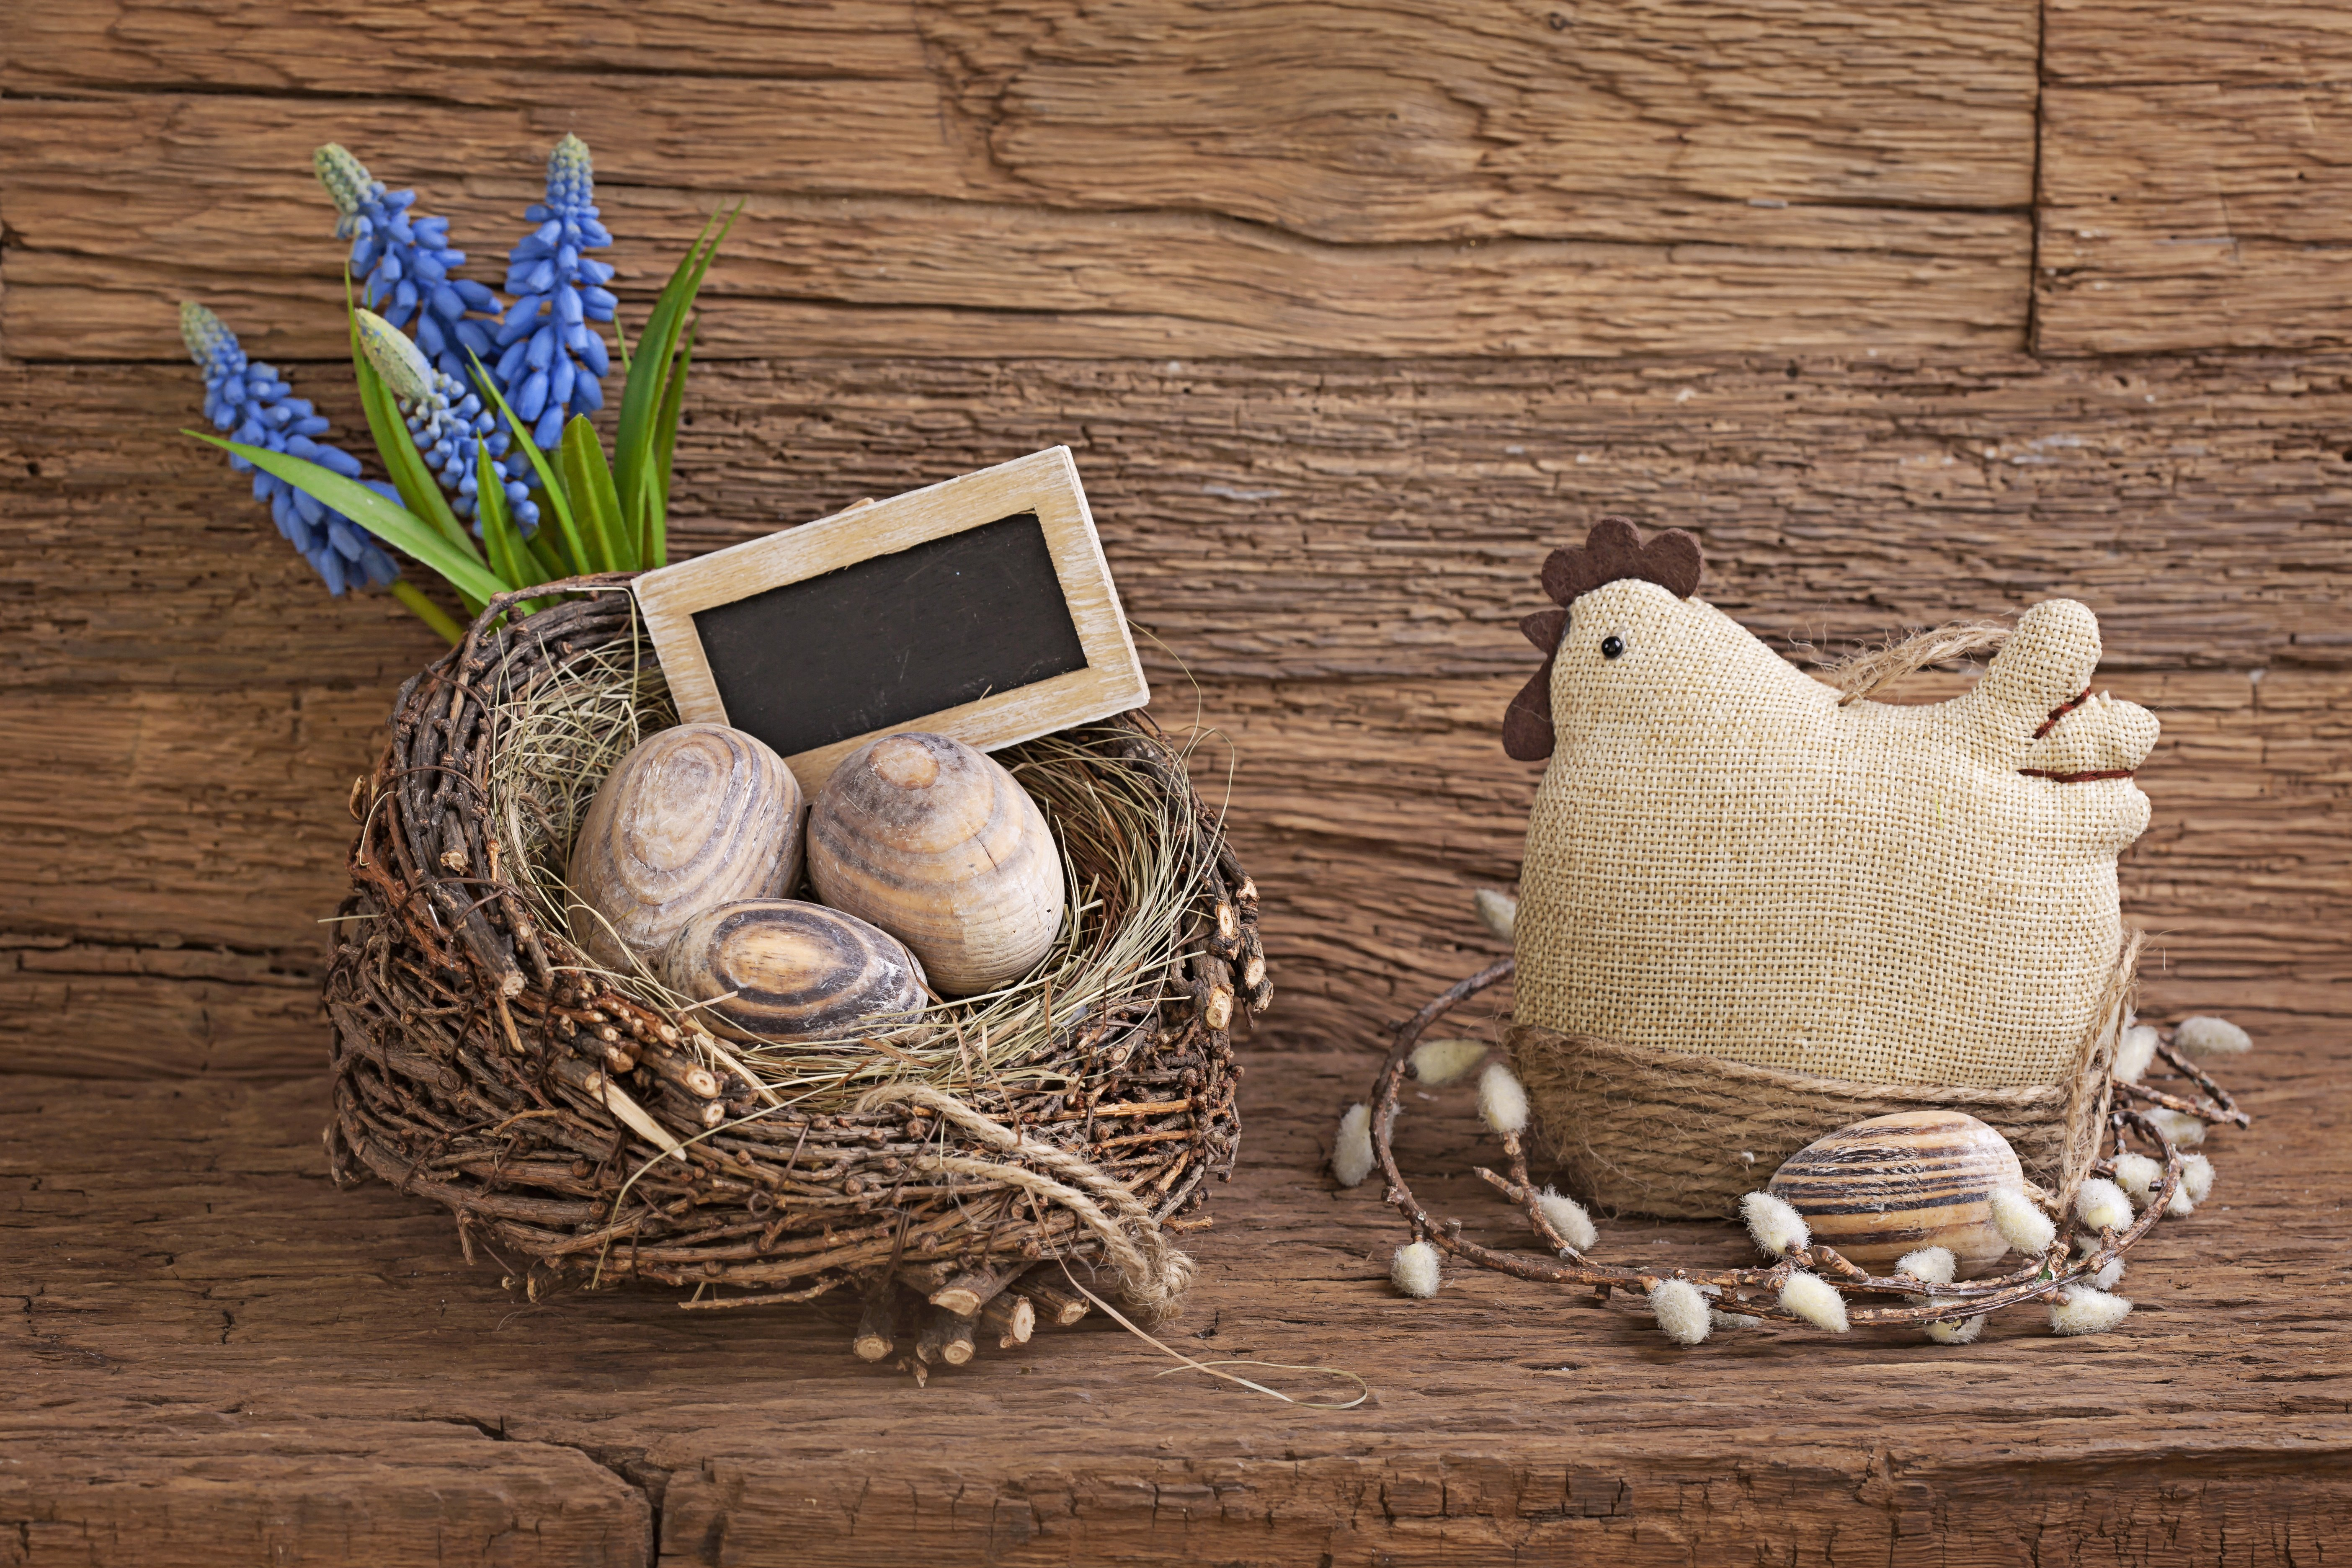 Wood chicken rustic easter eggs wallpaper 5616x3744 310022 wallpaperup Bricolage paques idees deco maison